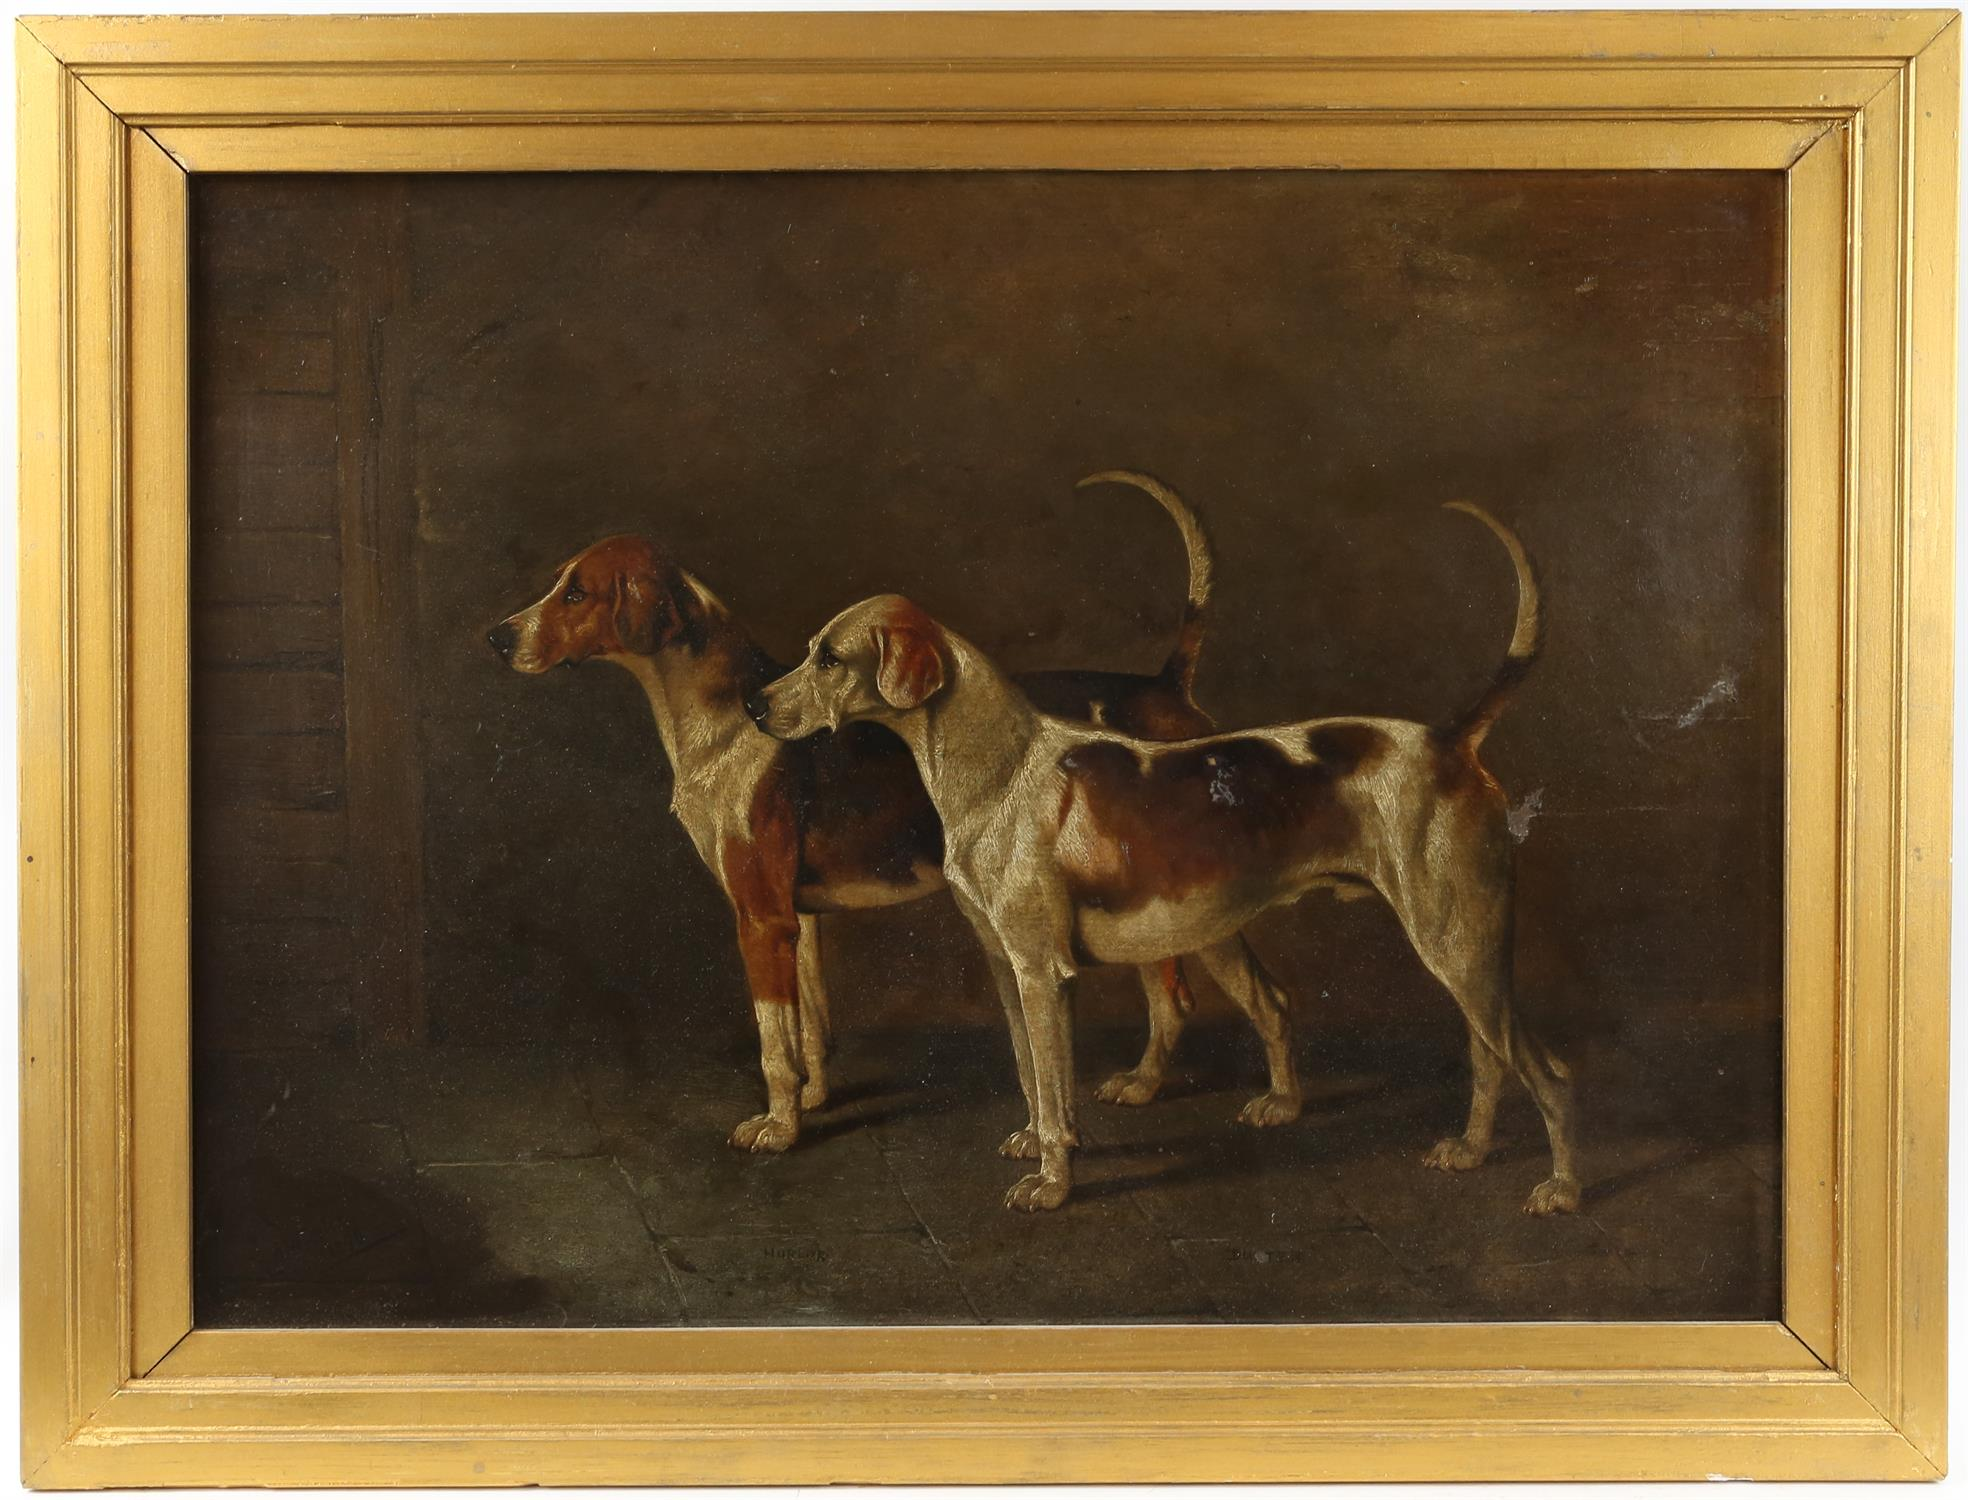 A Wheeler (19th century British), Two hounds, oil on board, signed and dated 1896 lower left, - Image 2 of 5